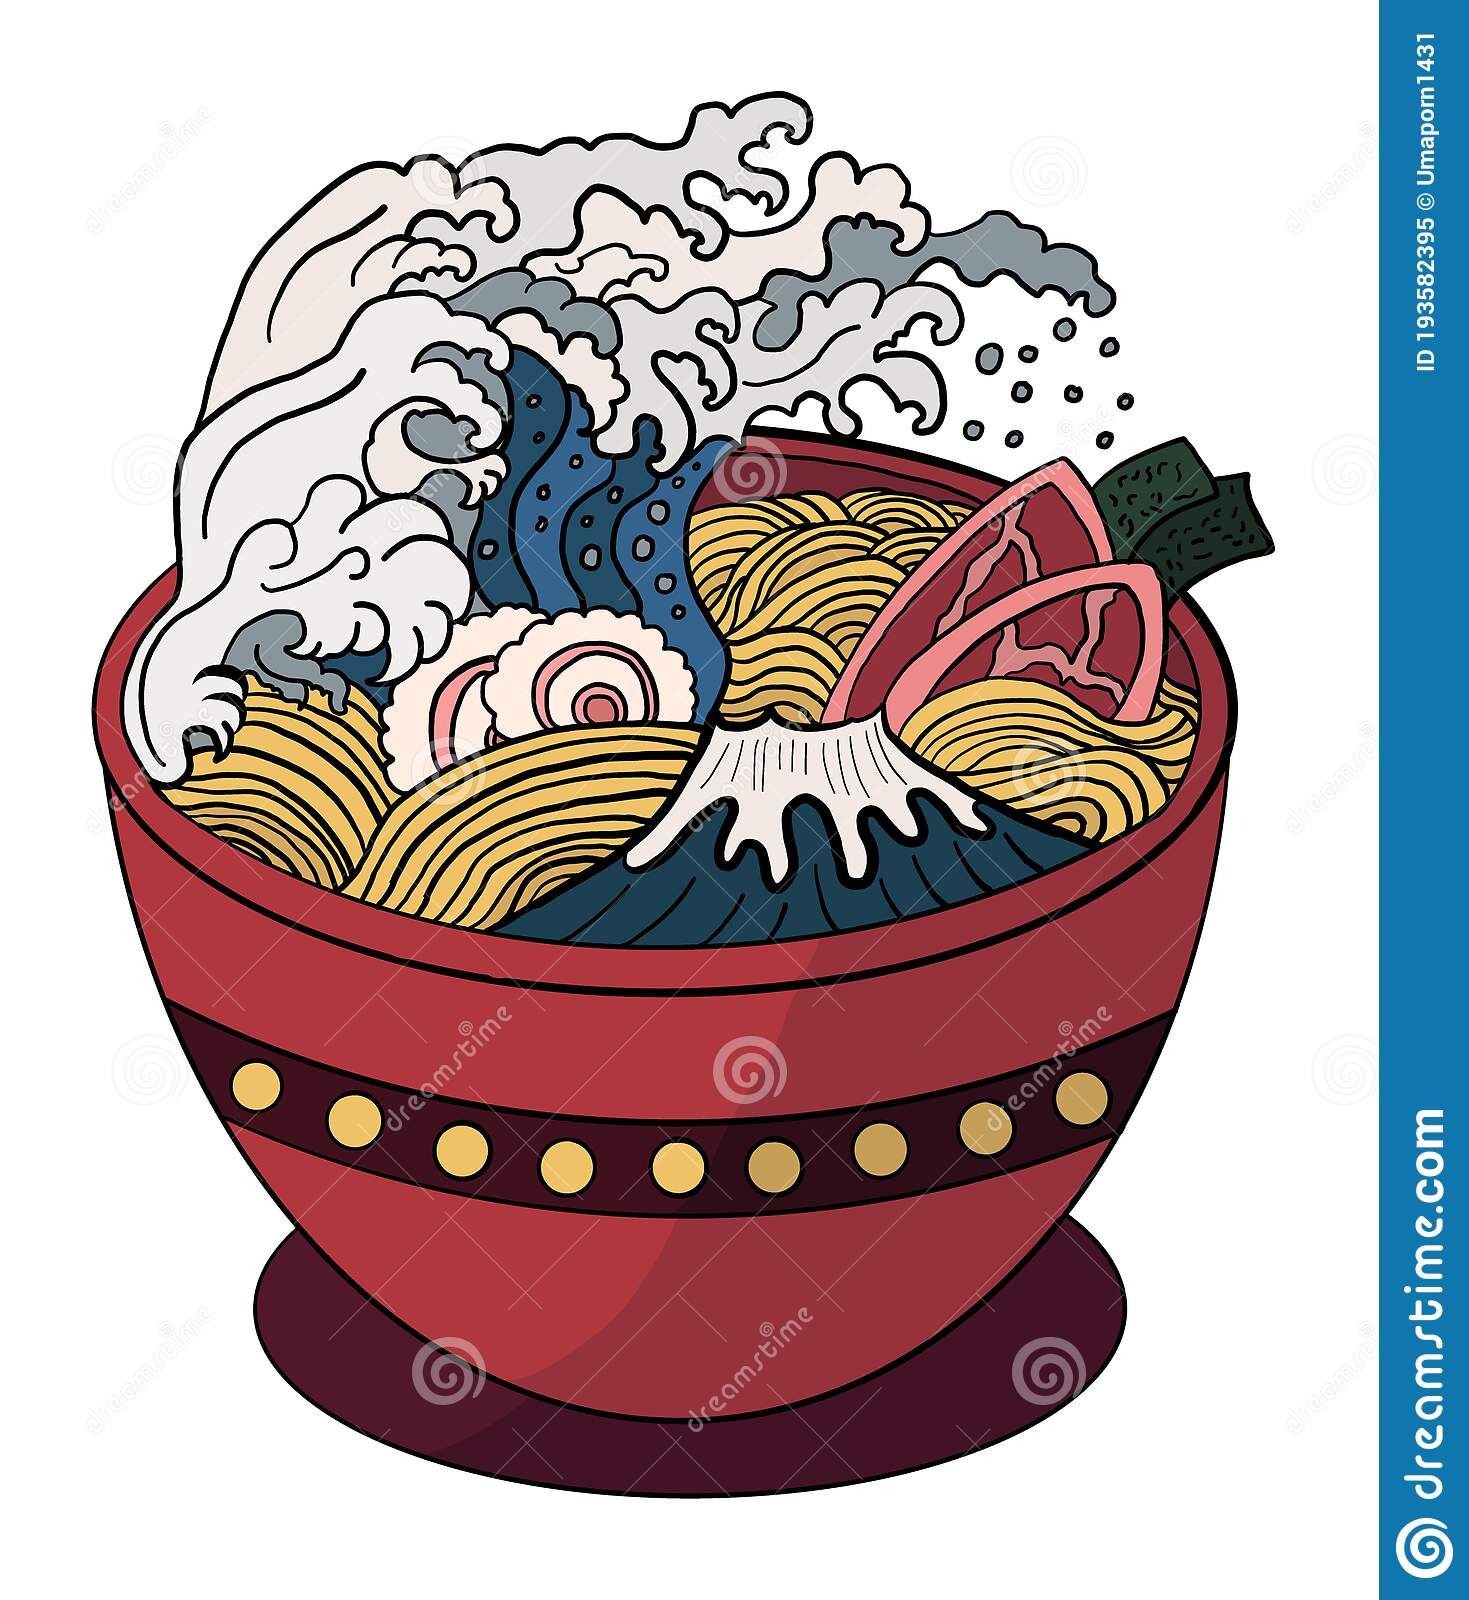 Ramen Vector Illustration For Doodle Art Stock Vector Illustration Of Japanese Cooking 193582395